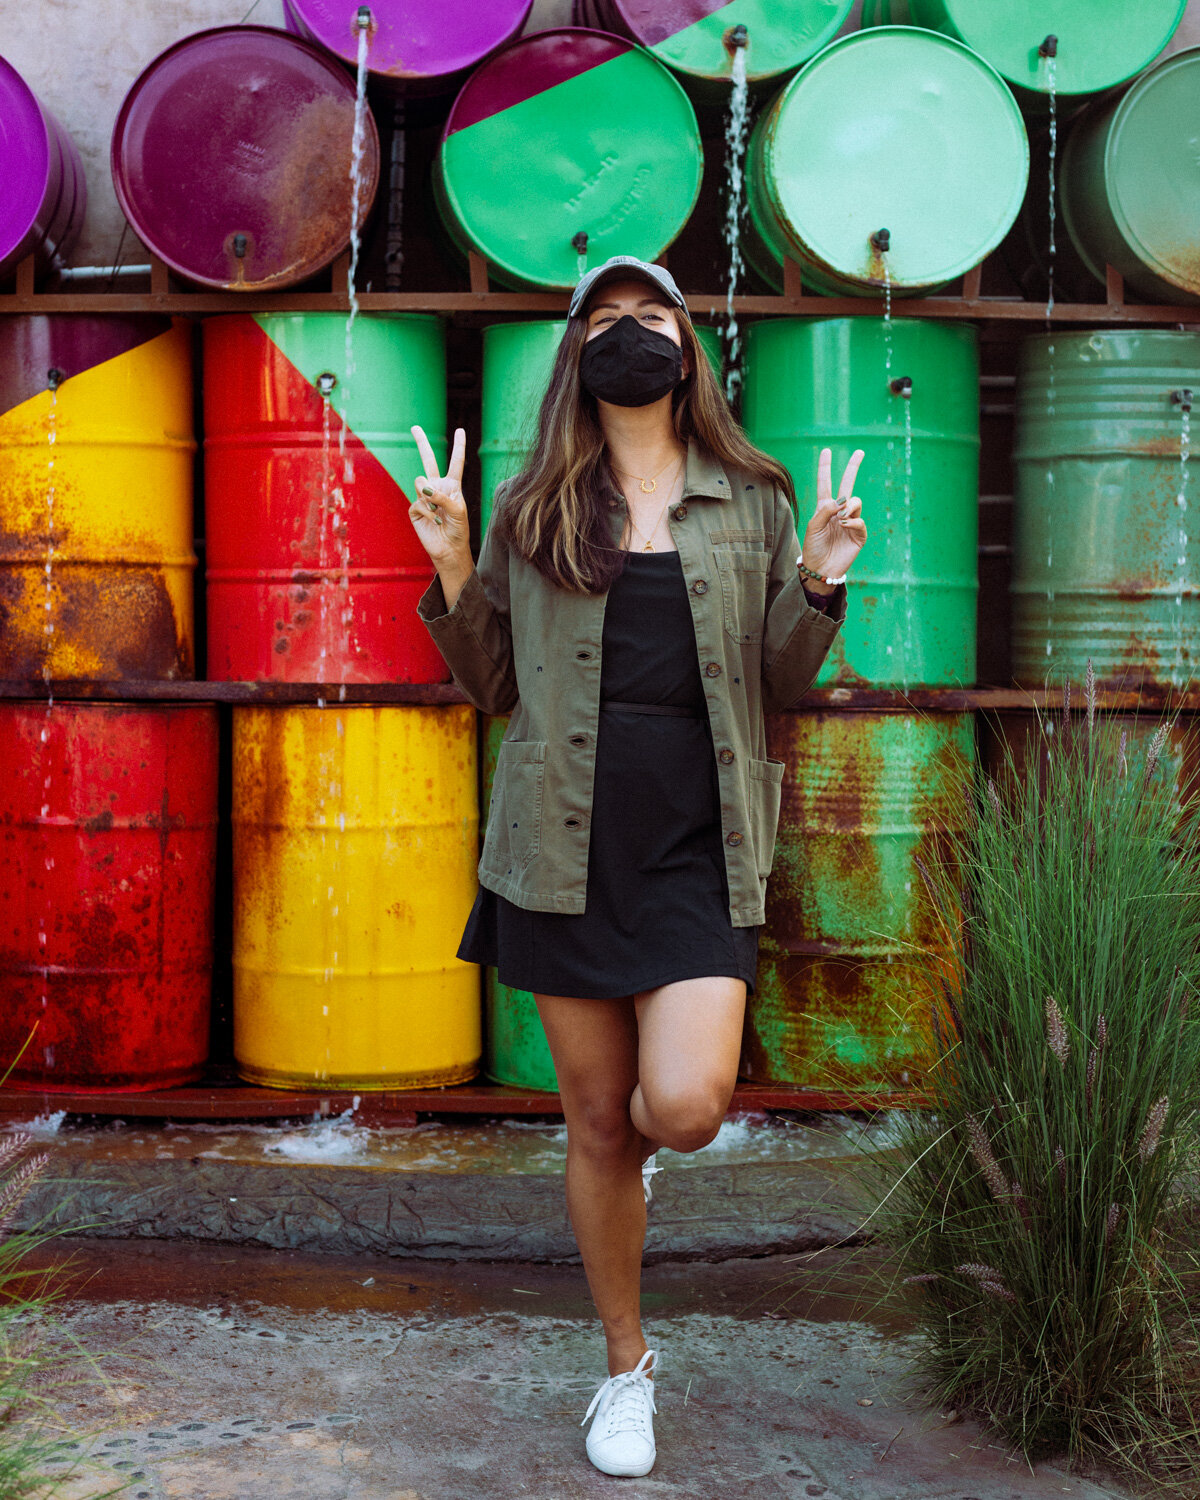 Rachel Off Duty: A Woman in a Black Dress and Black Mask Posing in Front of a Purple, Red, and Green Art Installation